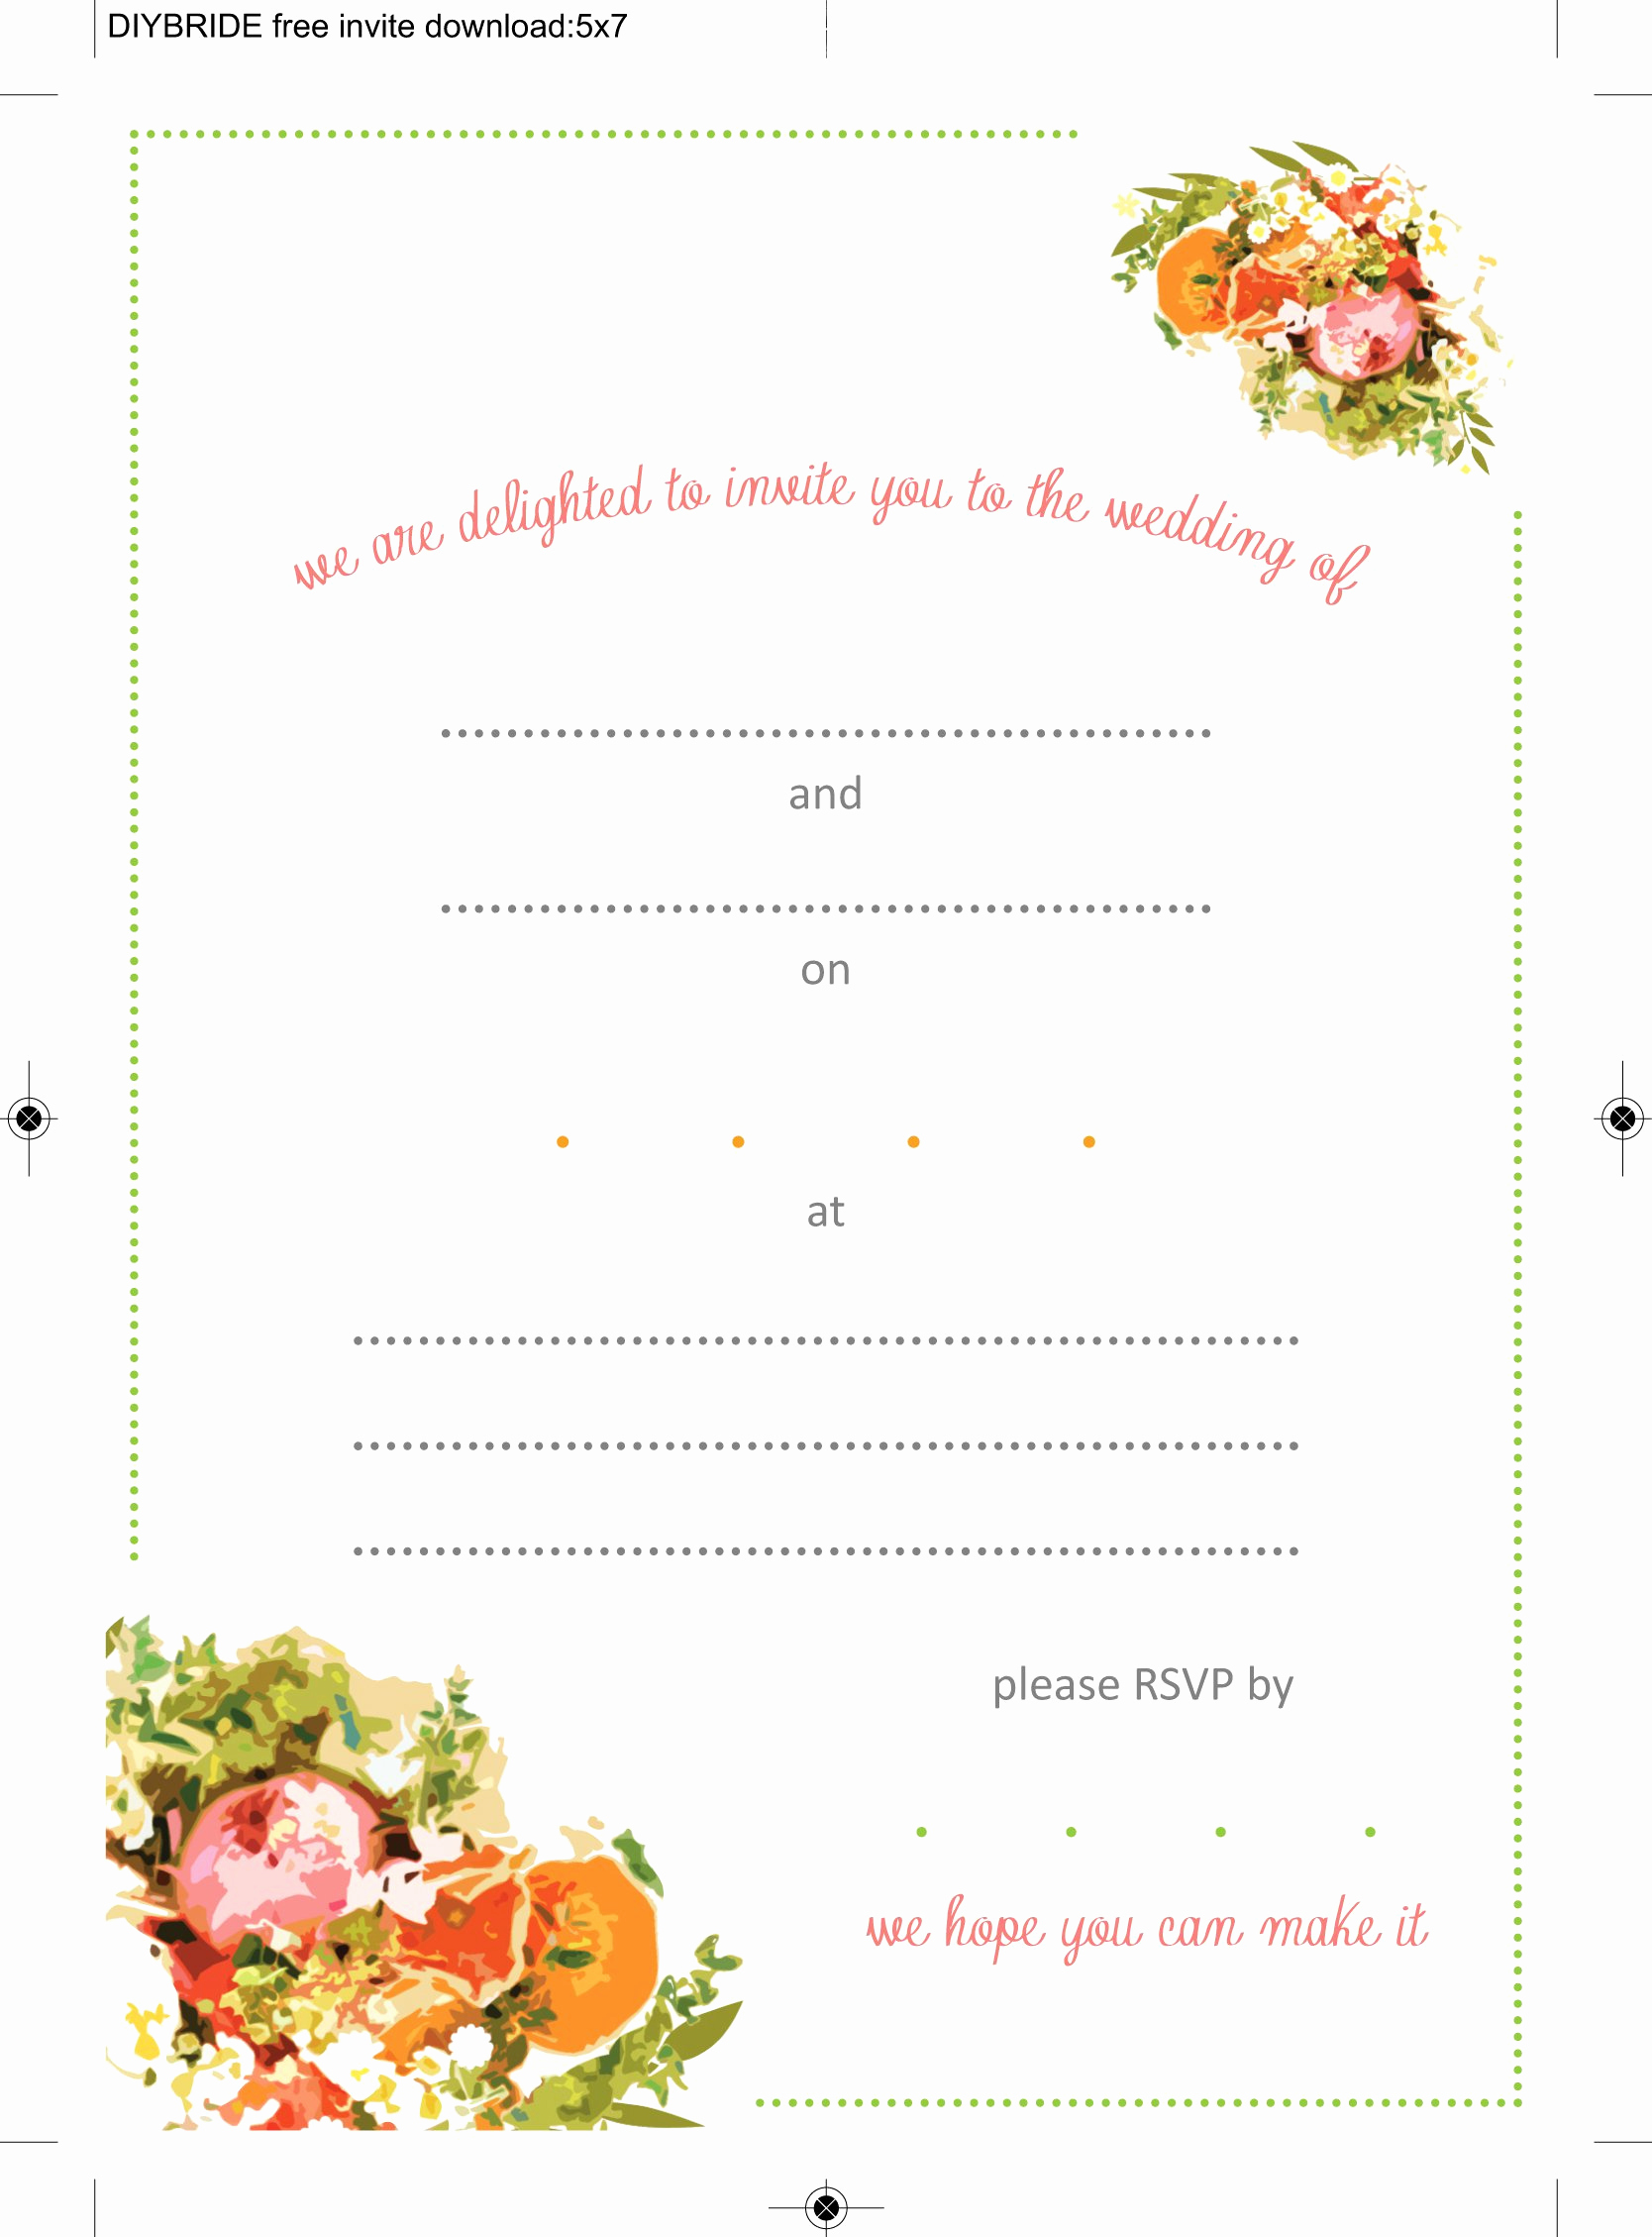 Free Downloadable Wedding Invitation Templates Unique Wedding Invitation Templates that are Cute and Easy to